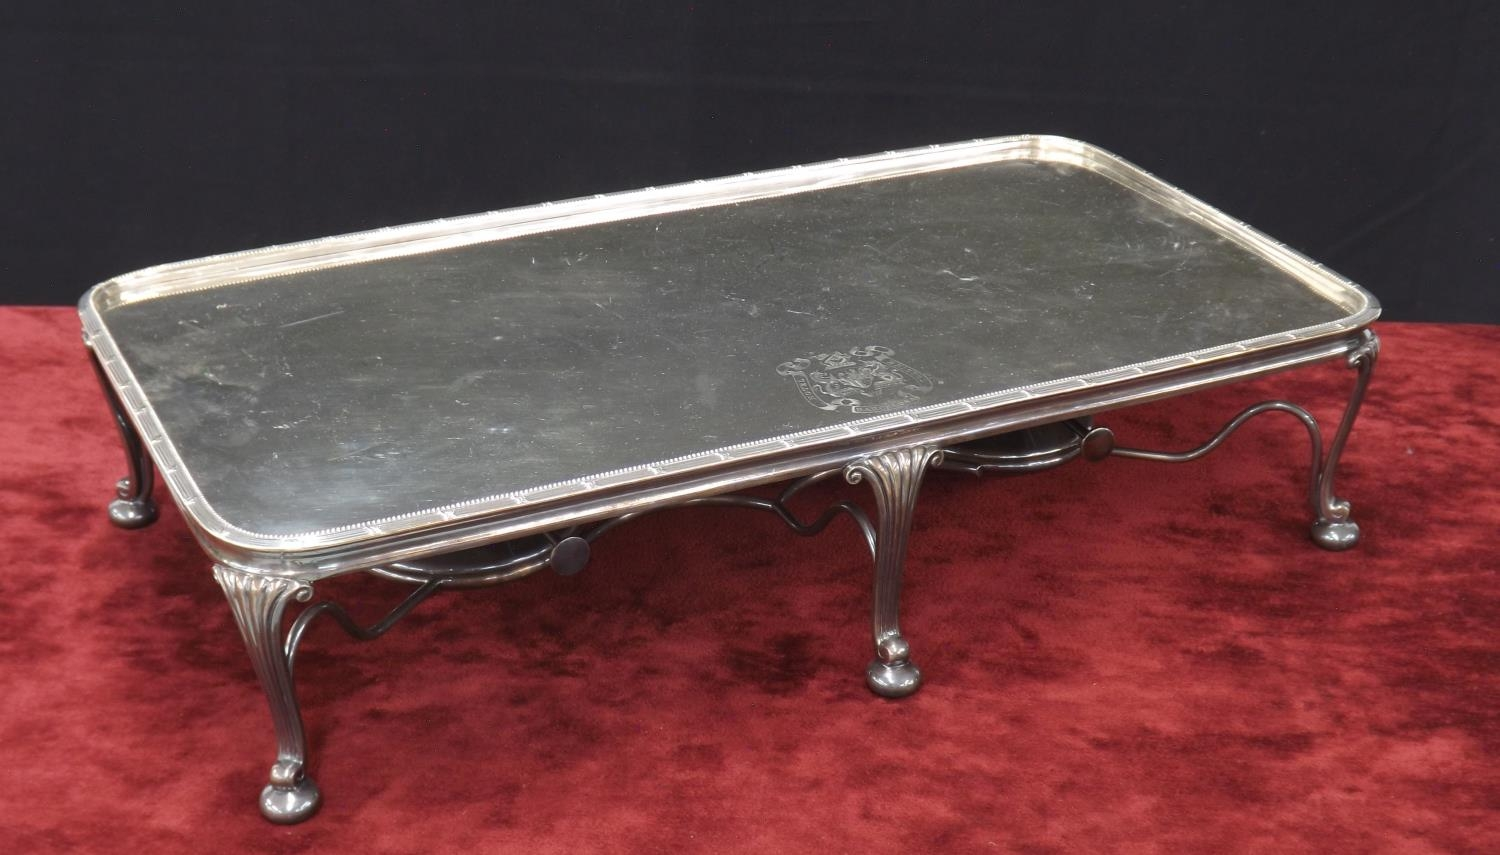 Large silver plated hot plate serving stand, with engraved crest for ?Hotel Bristol Barcelona?, with - Image 2 of 3